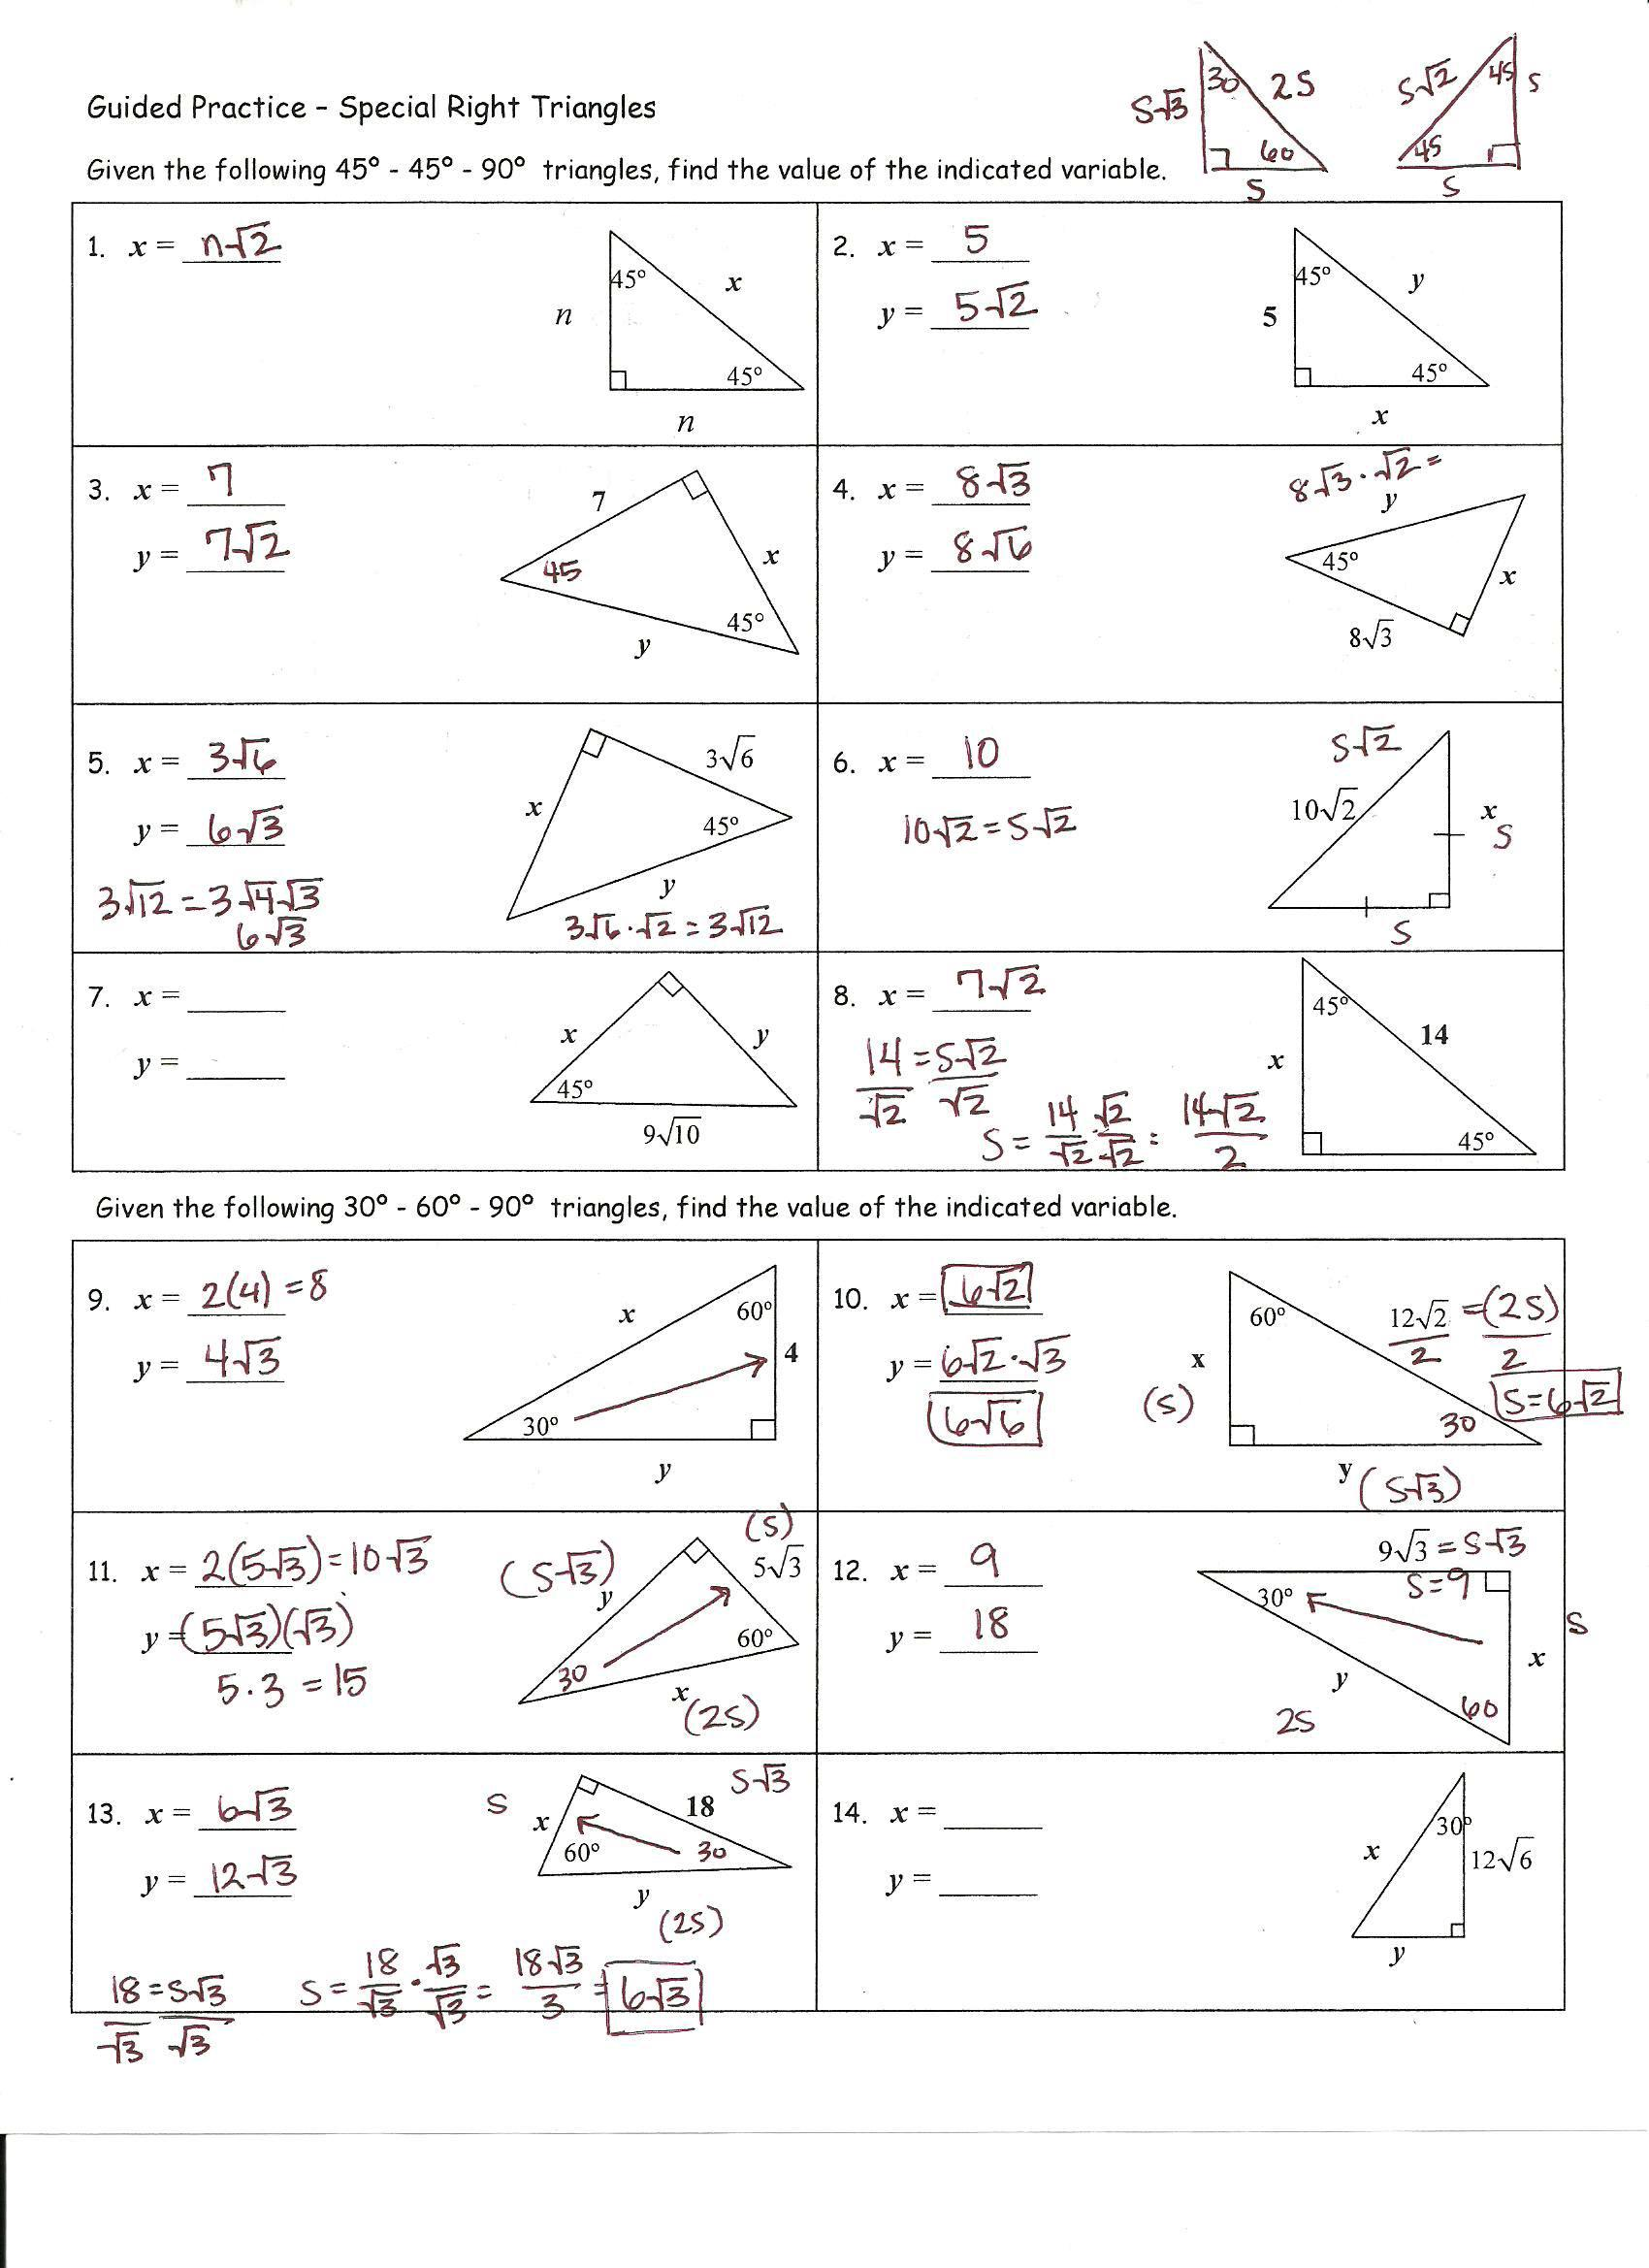 Worksheets Special Right Triangles 30 60 90 Worksheet Answers worksheets special right triangles 30 60 90 worksheet answers and trigonometry free worksheets